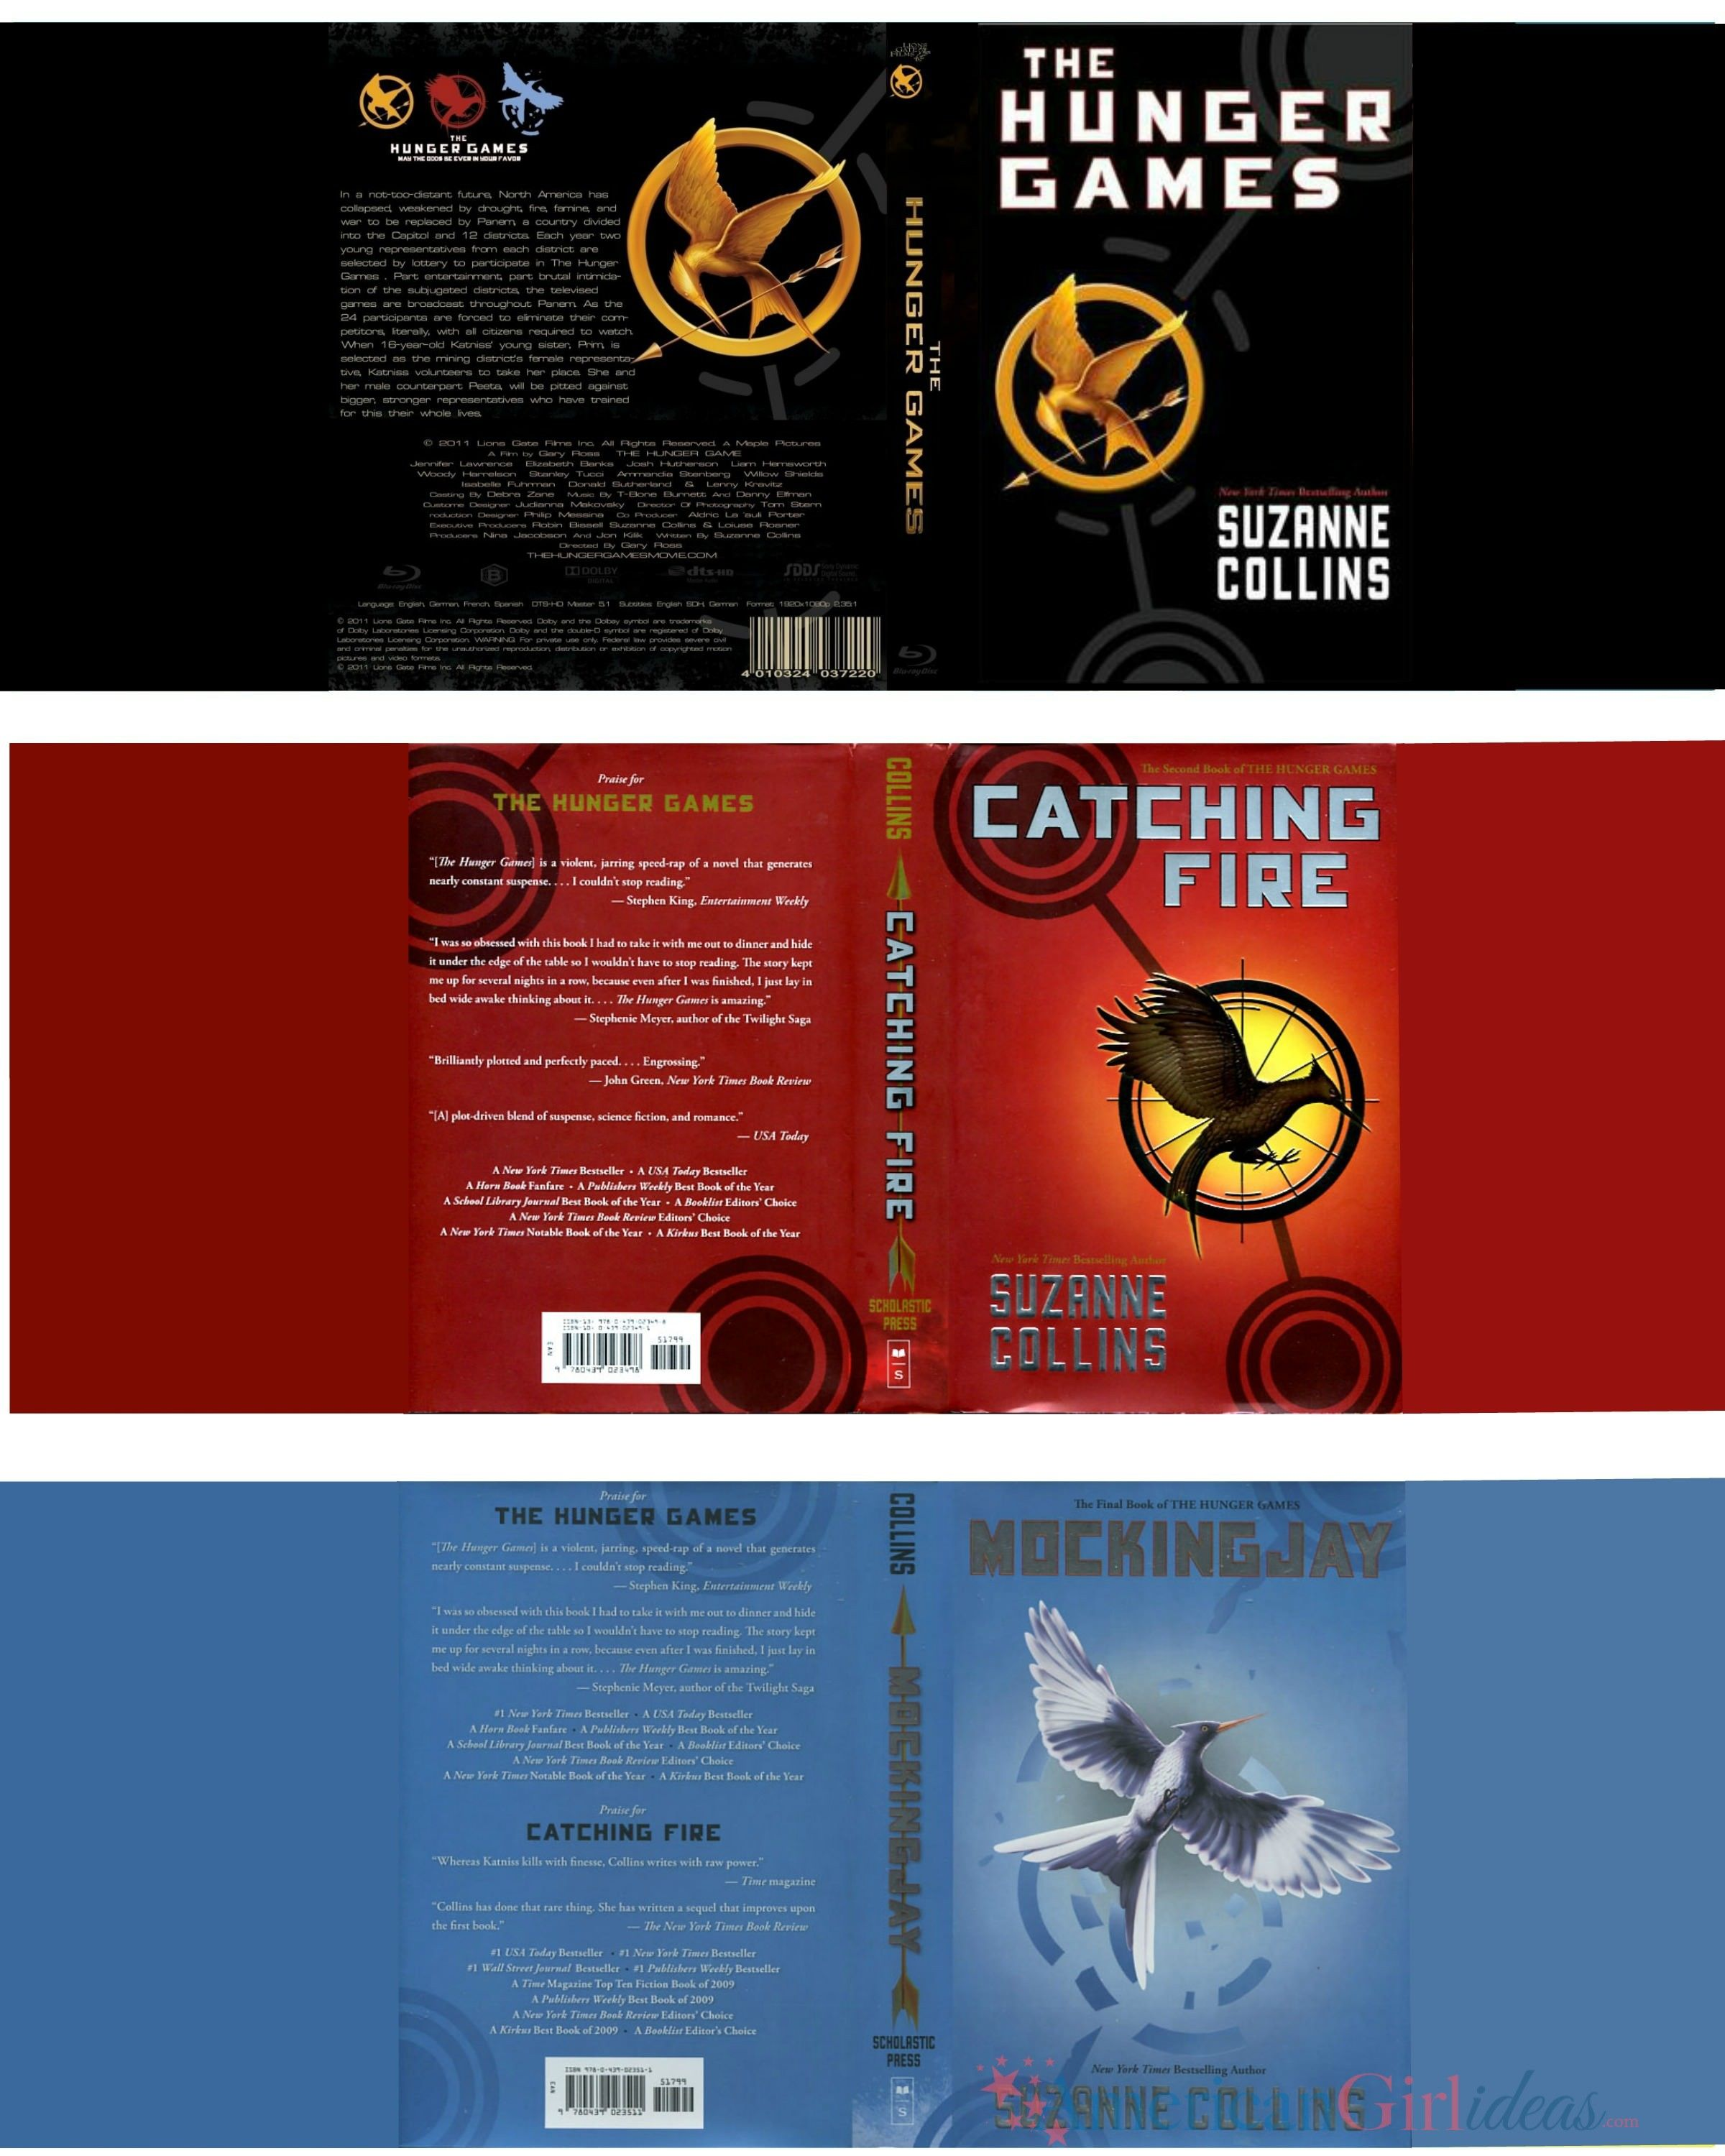 Book Cover Photography Games ~ Hunger games book cover front and back imgkid